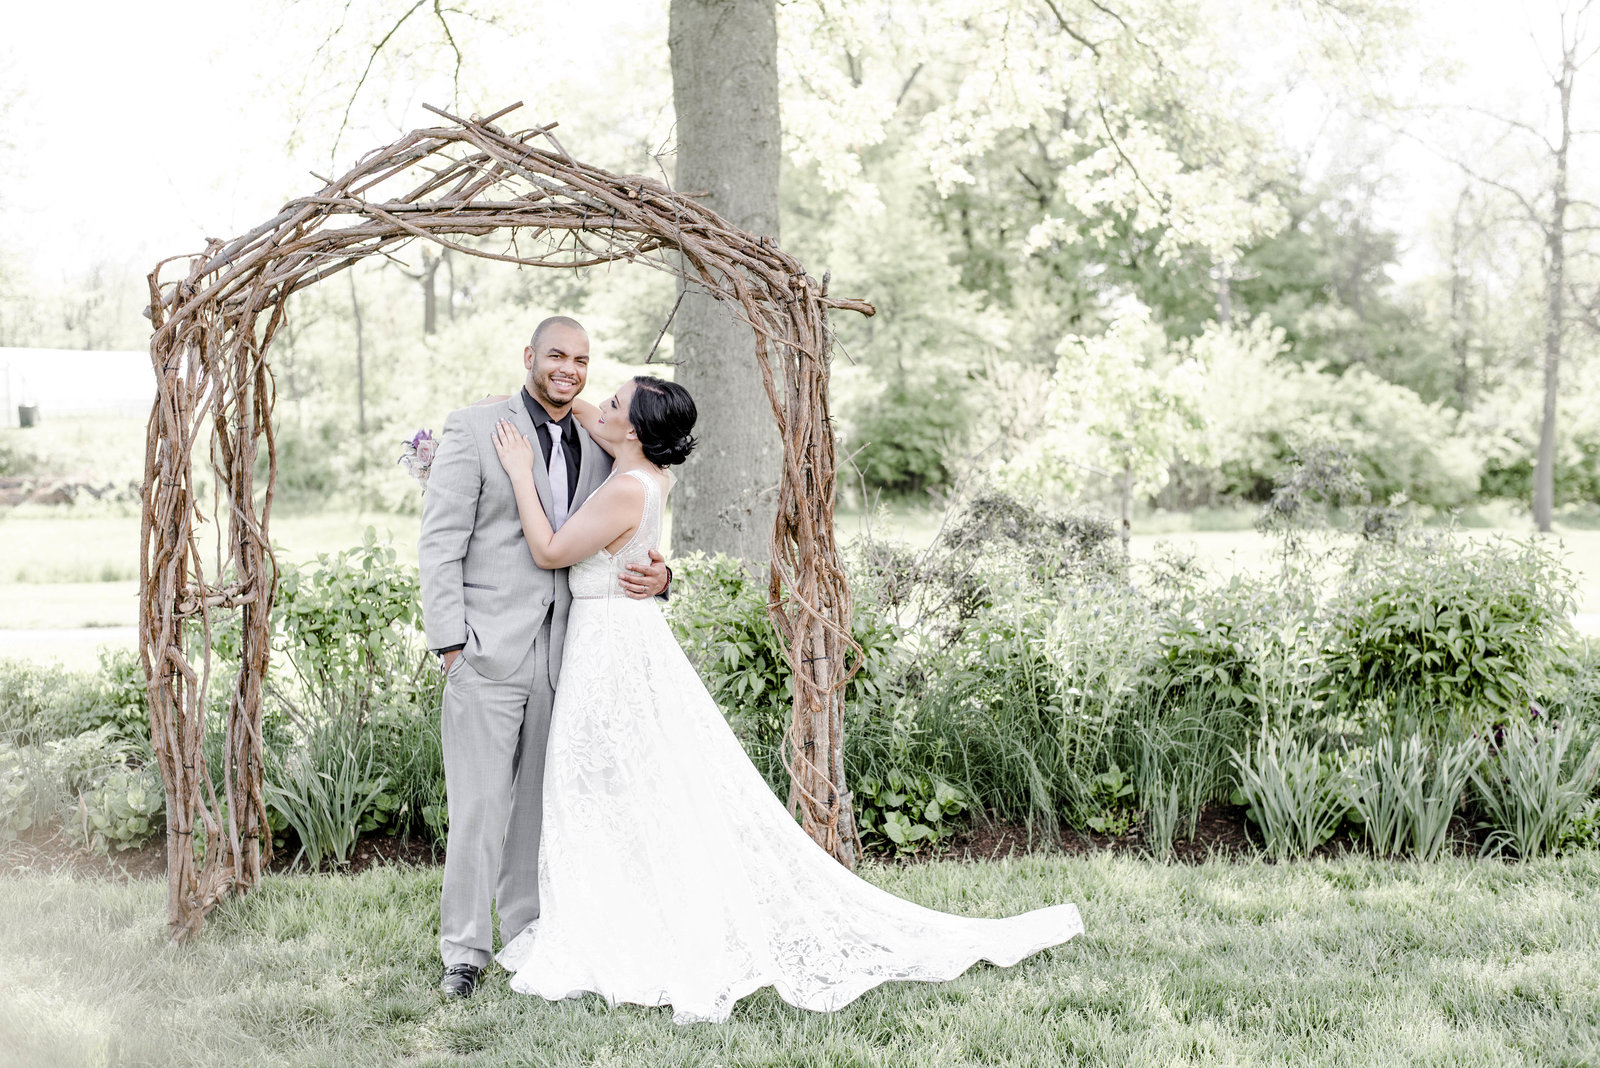 Cassidy_Alane_Photography-Jorgensen_Farm-Ohio_Wedding_Photographer-Lavender_Styled_Shoot-45